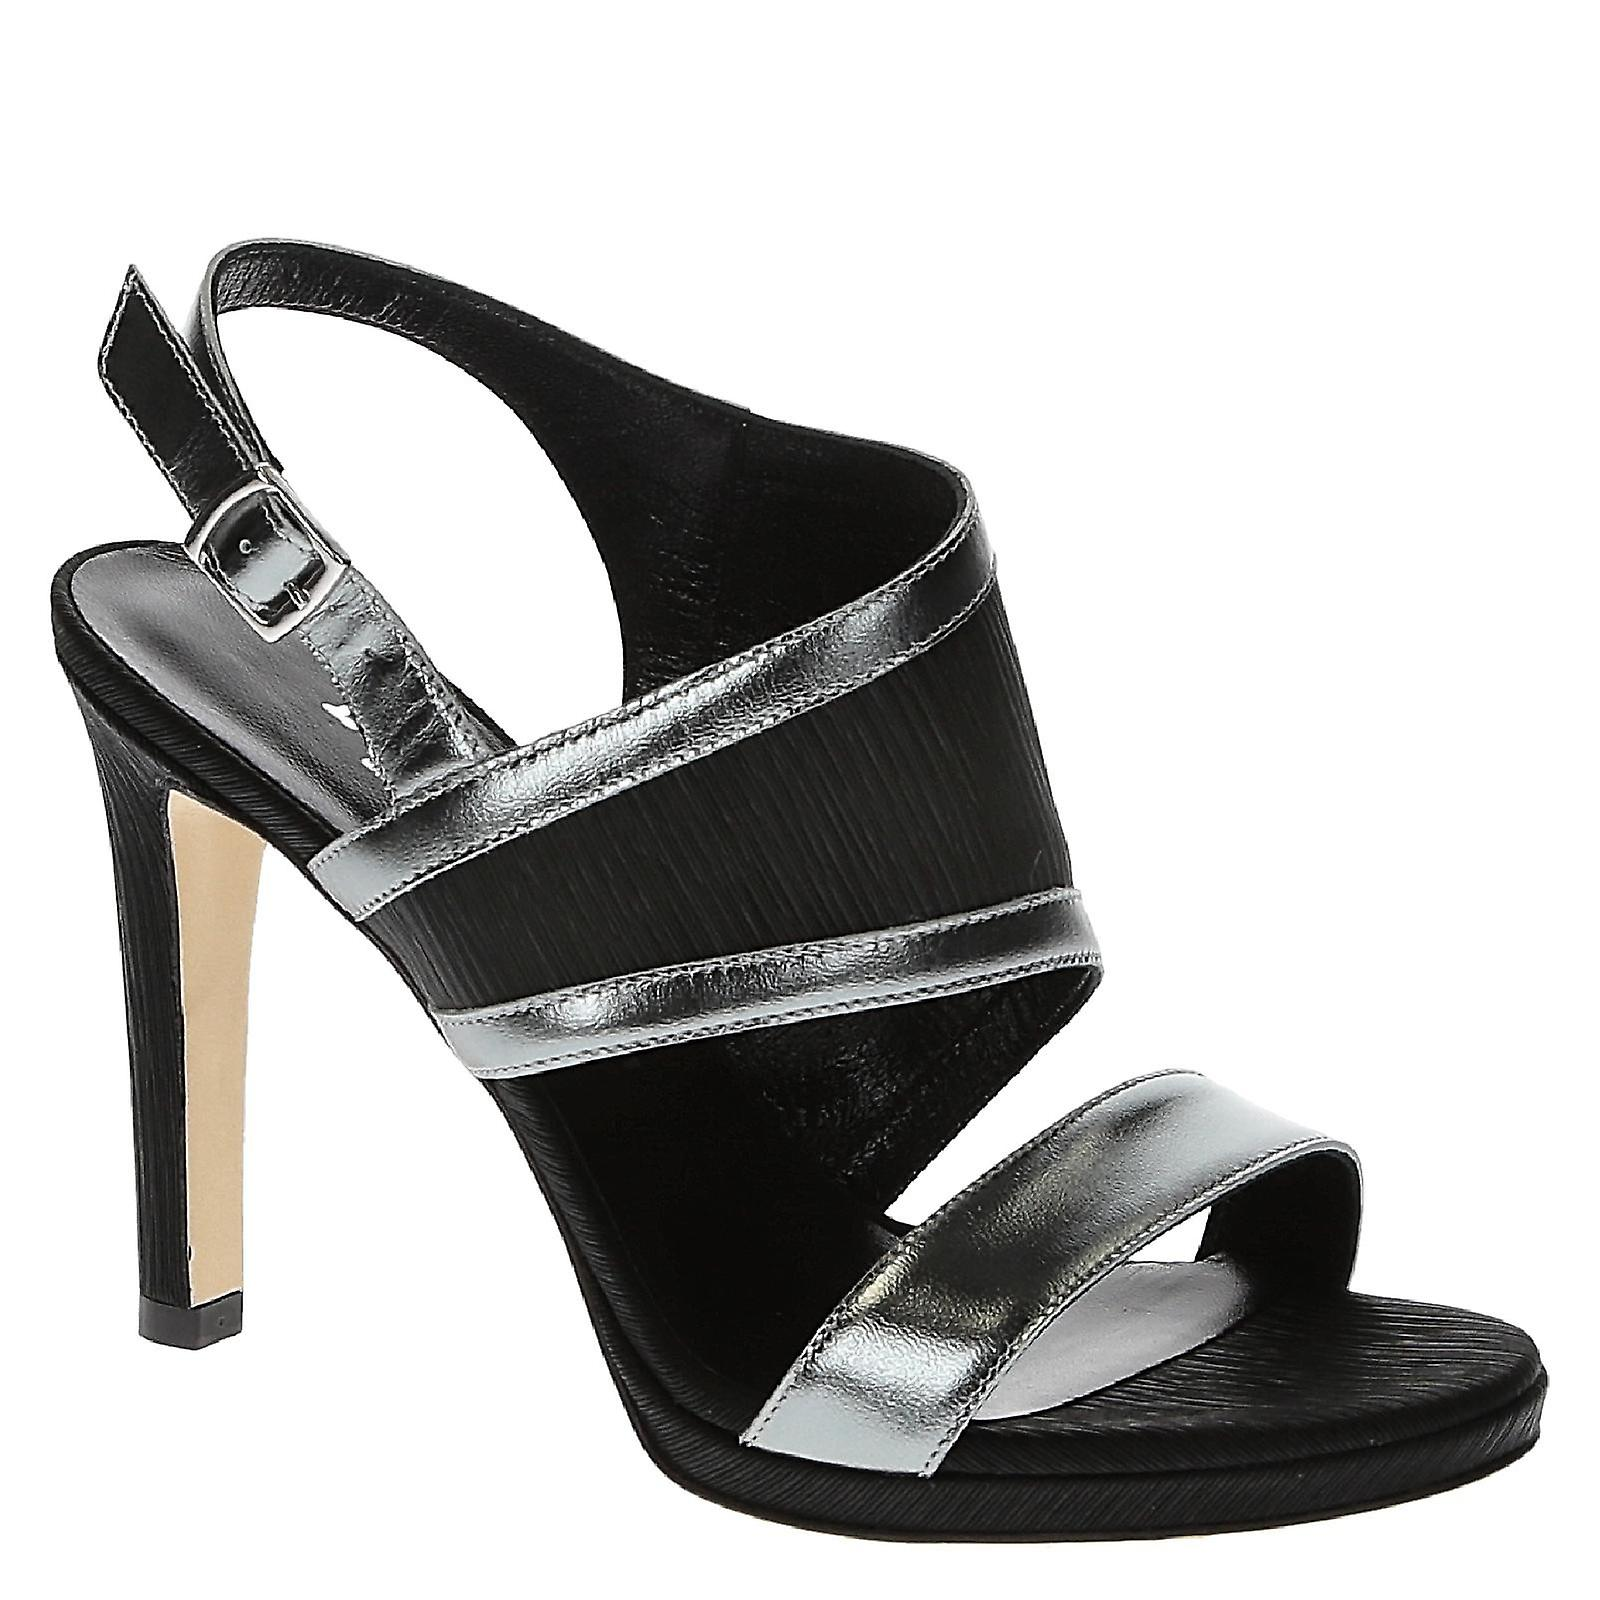 Handmade evening chaussures in noir satin and metallic leather